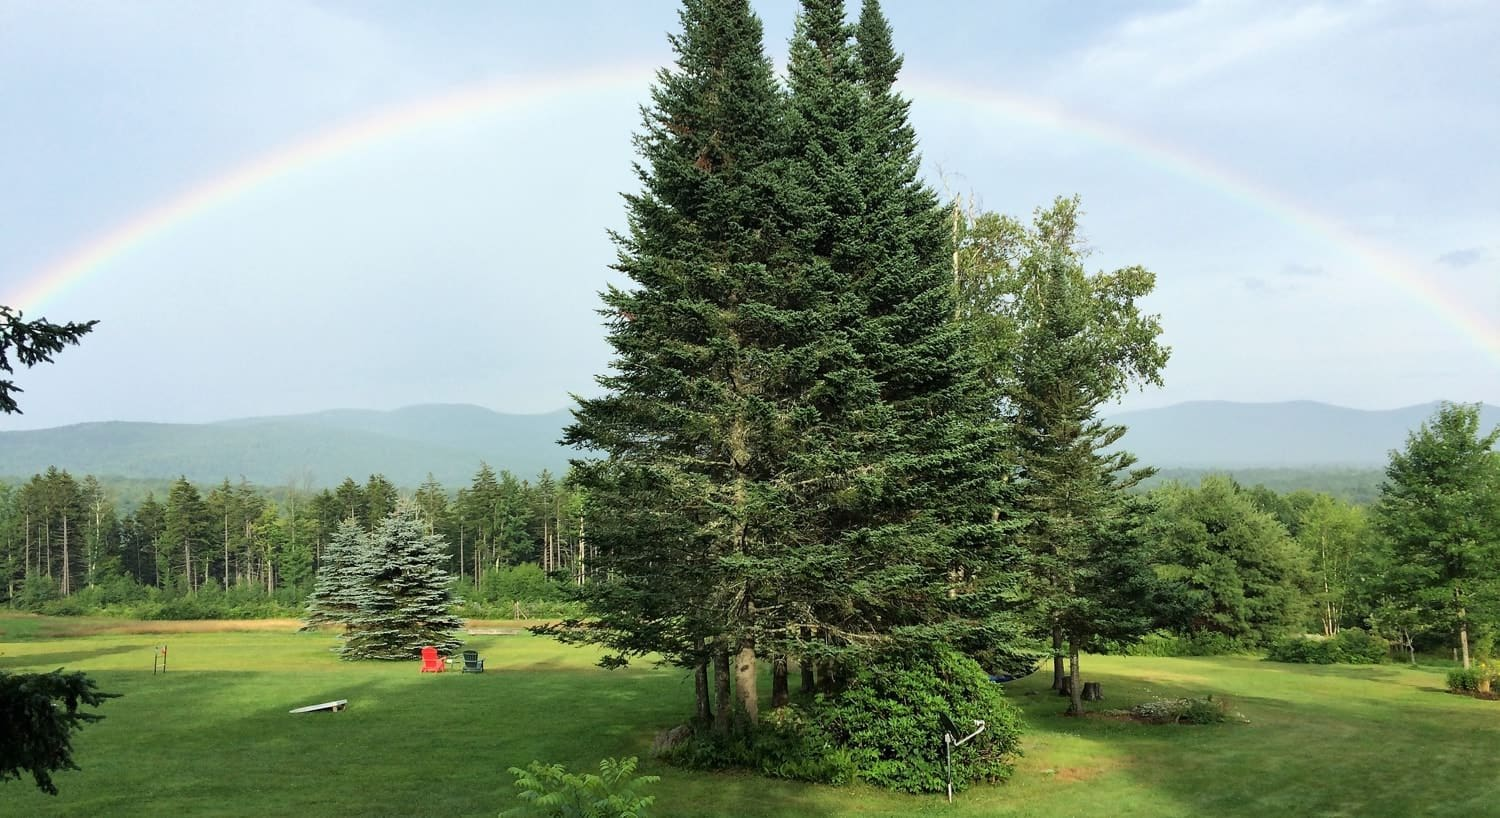 Gorgeous rainbow arced over the properties green grass, trees and distant hills